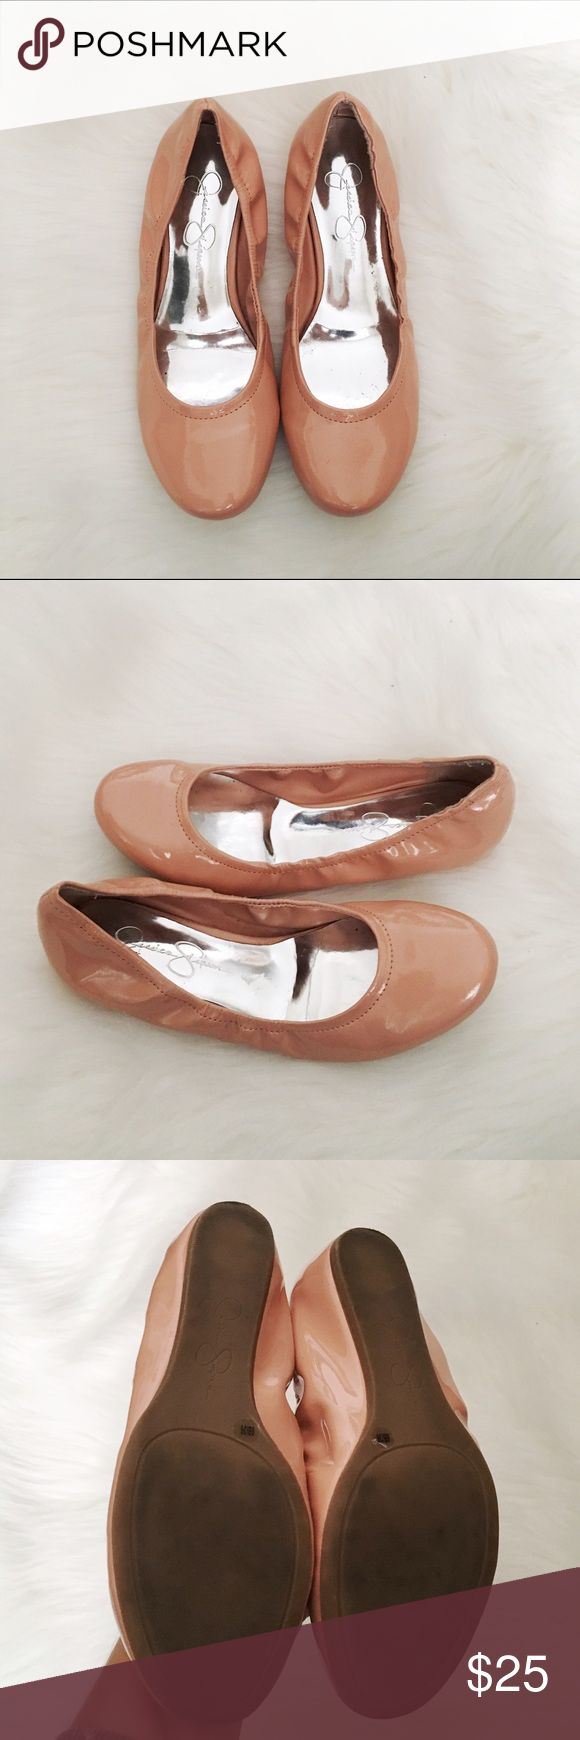 Jessica Simpson Angelique Light Pink Patent Flats Jessica Simpson Angelique patent ballet flats in light pink. Worn twice, great condition. No box. Super comfy. Size 6. No modeling/trades. Jessica Simpson Shoes Flats & Loafers